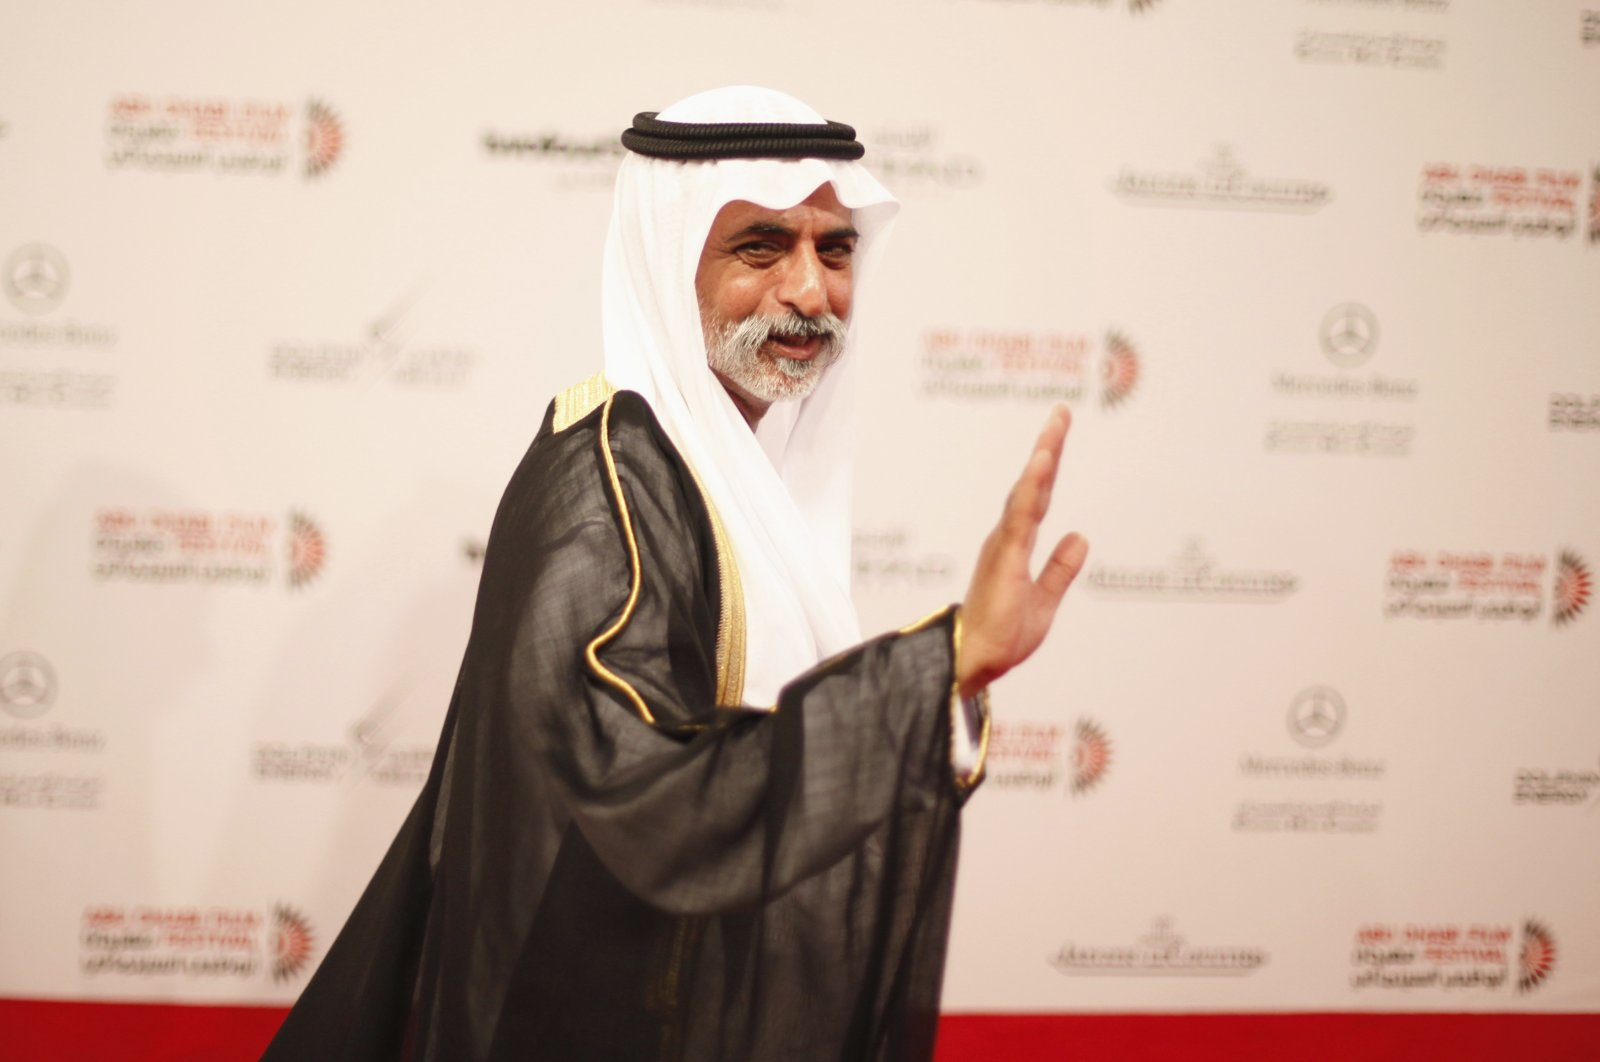 Sheikh Nahyan Bin Mubarak Al Nahyan, then-UAE minister of higher education and scientific research, arrives during the opening of the Abu Dhabi Film Festival, Oct.11, 2012. (Reuters Photo)